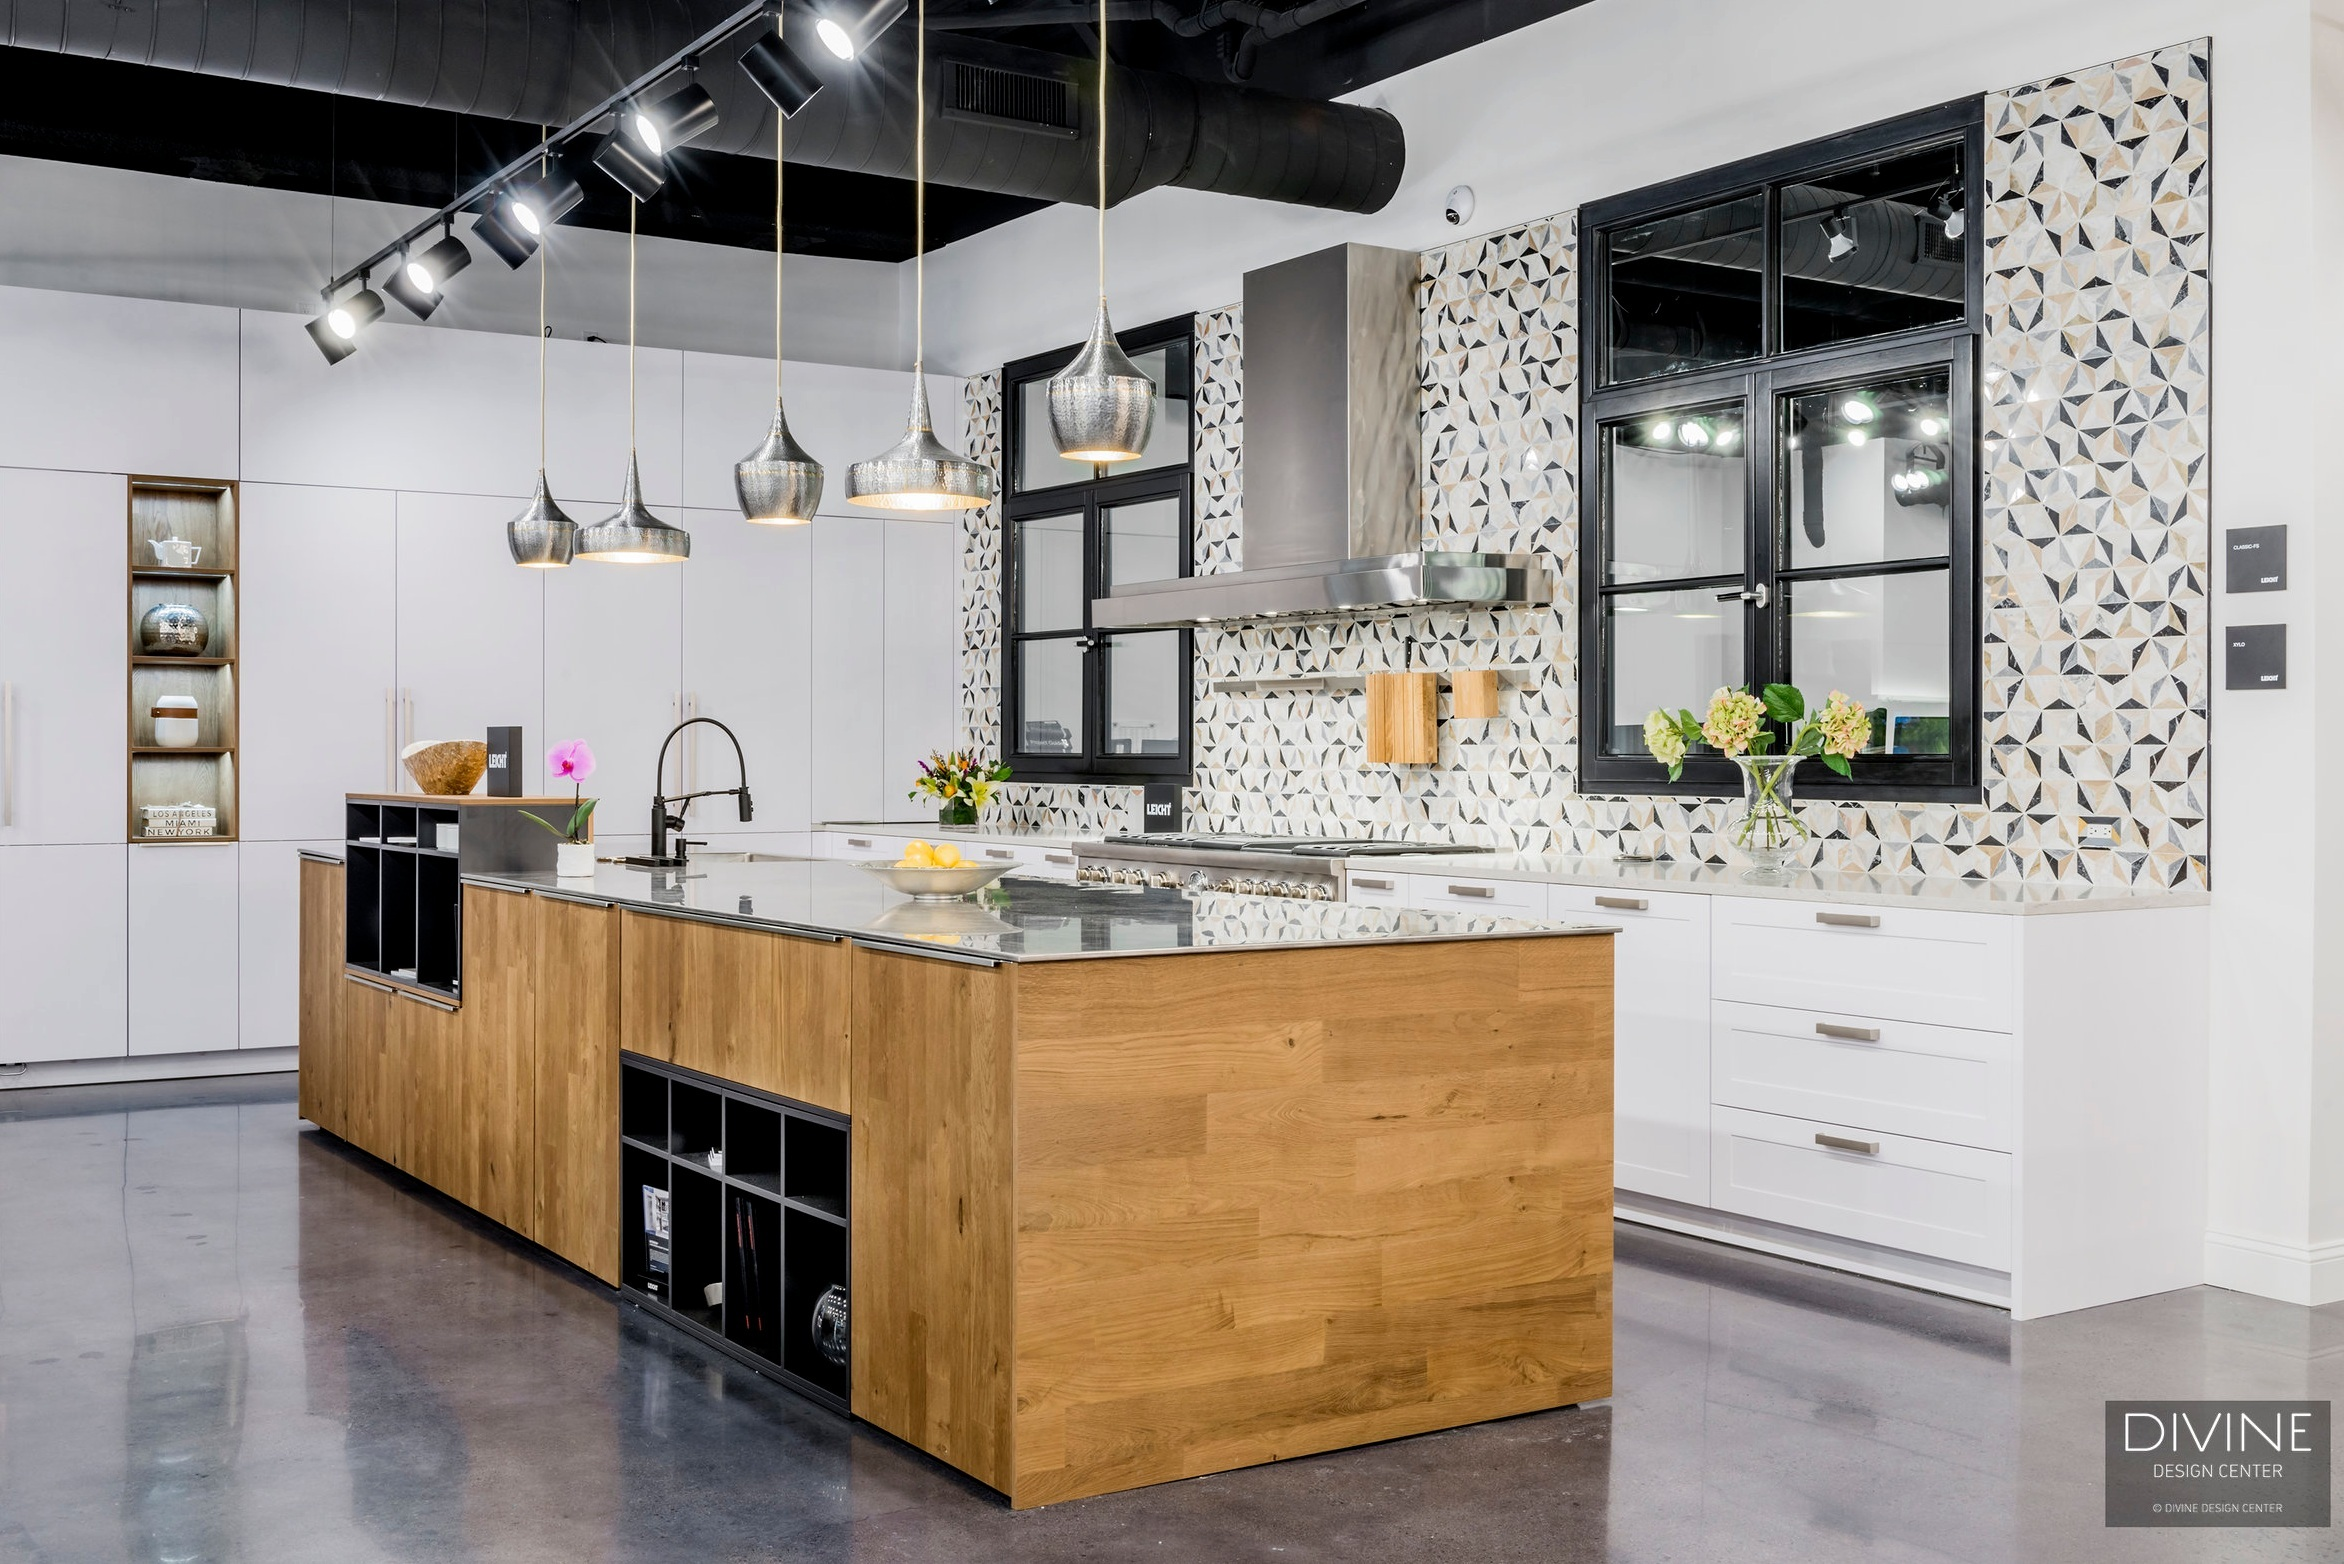 Divine Design Center — Boston\'s Premiere European Design Firm